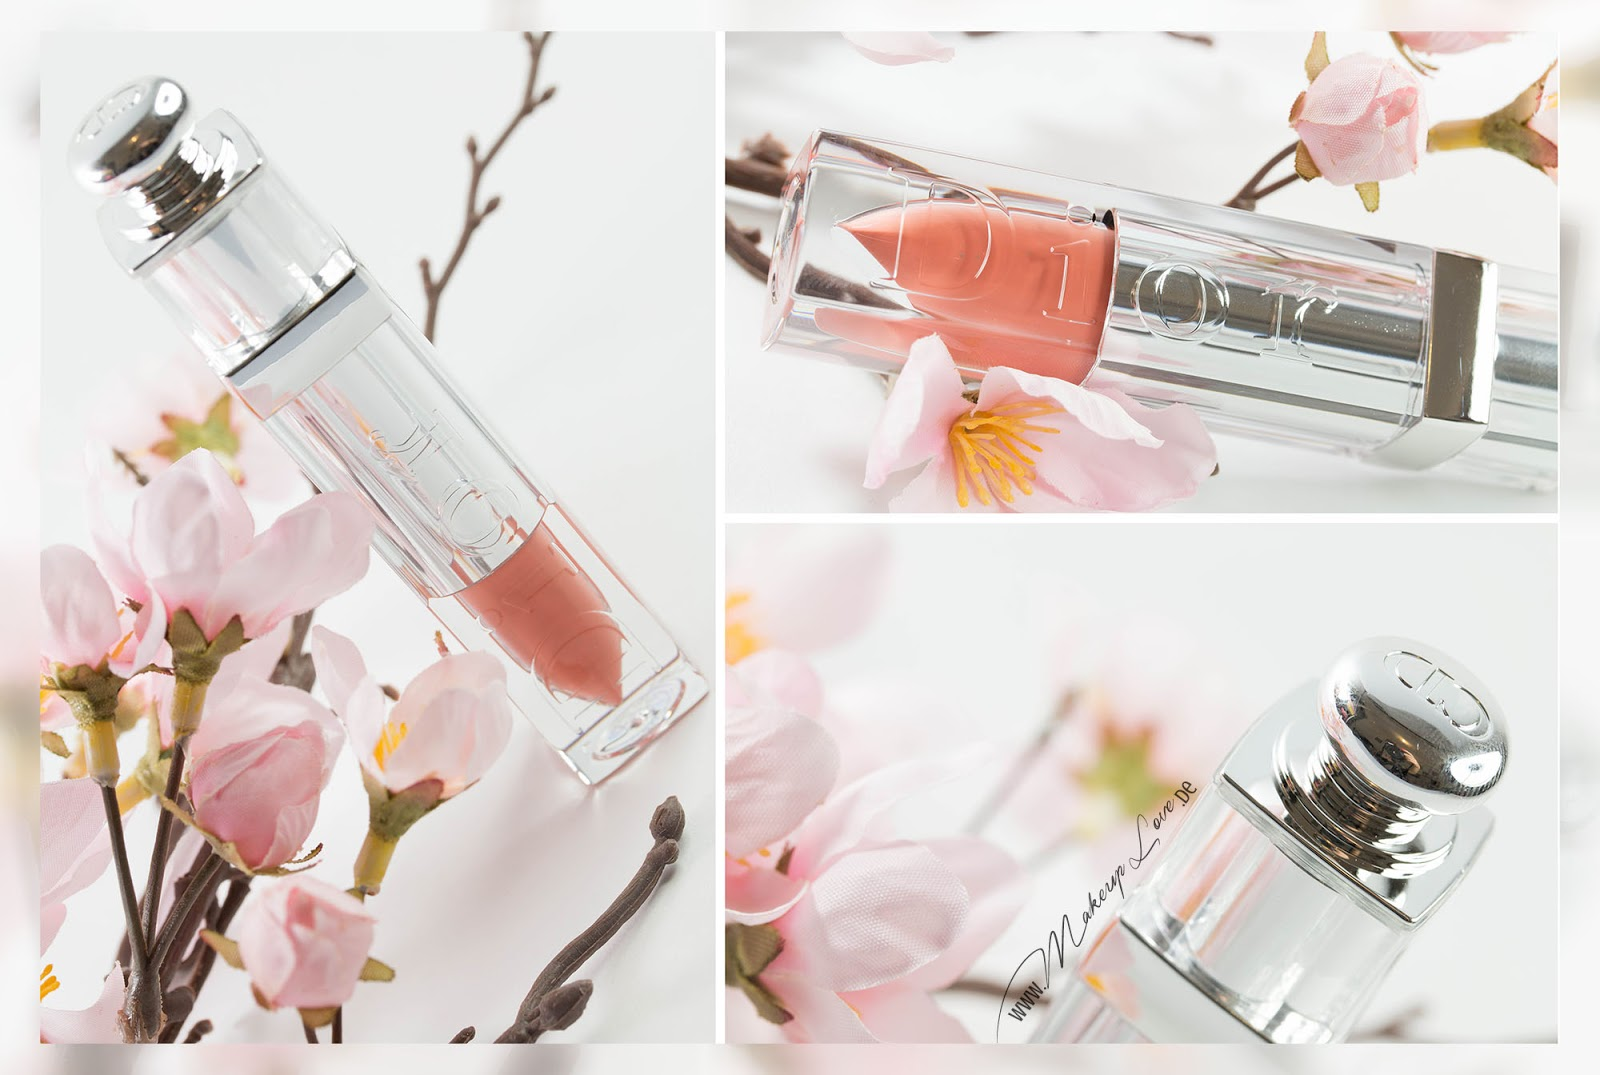 Dior Addict Fluid Stick Mirage